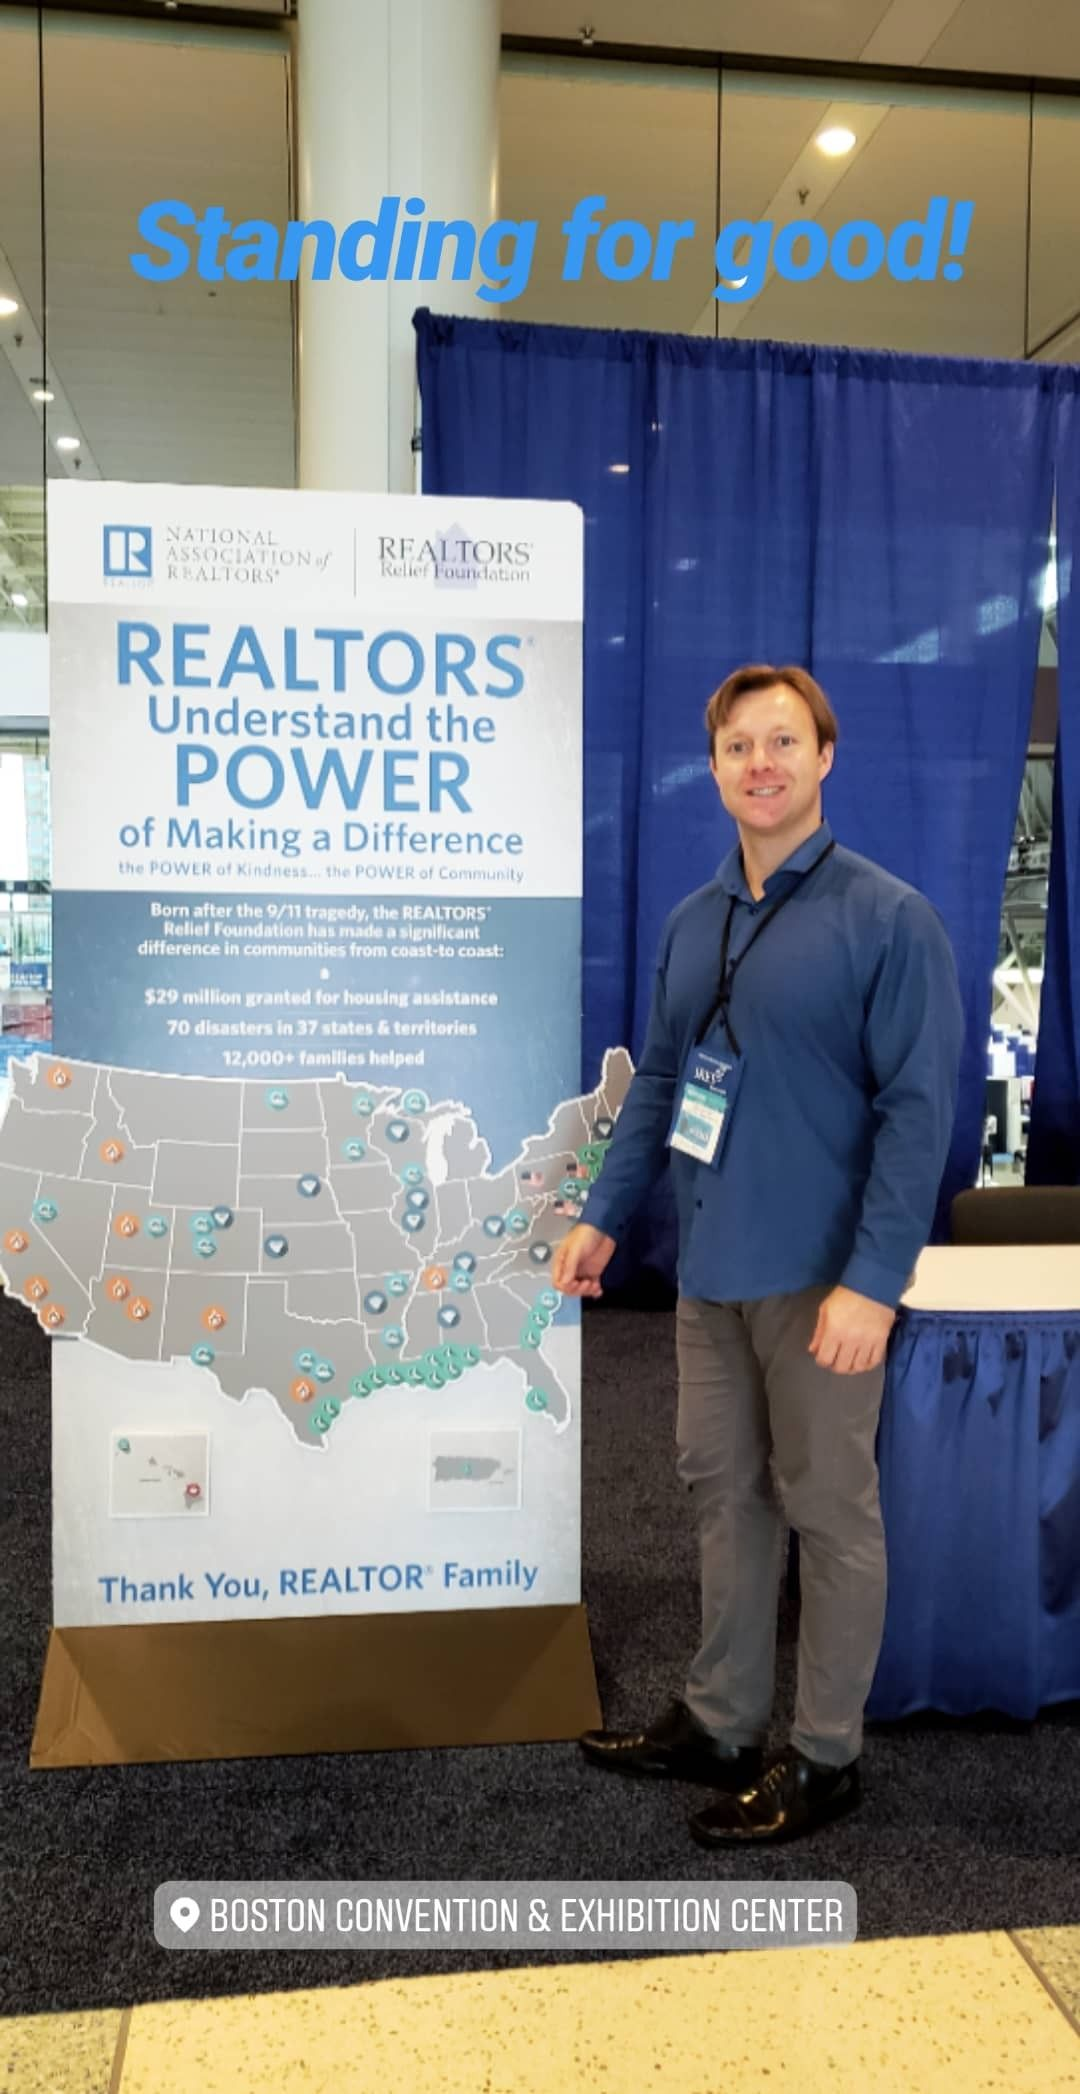 Conference In Boston Wednesday November >> Final Day Of National Association Of Realtors 2018 Annual